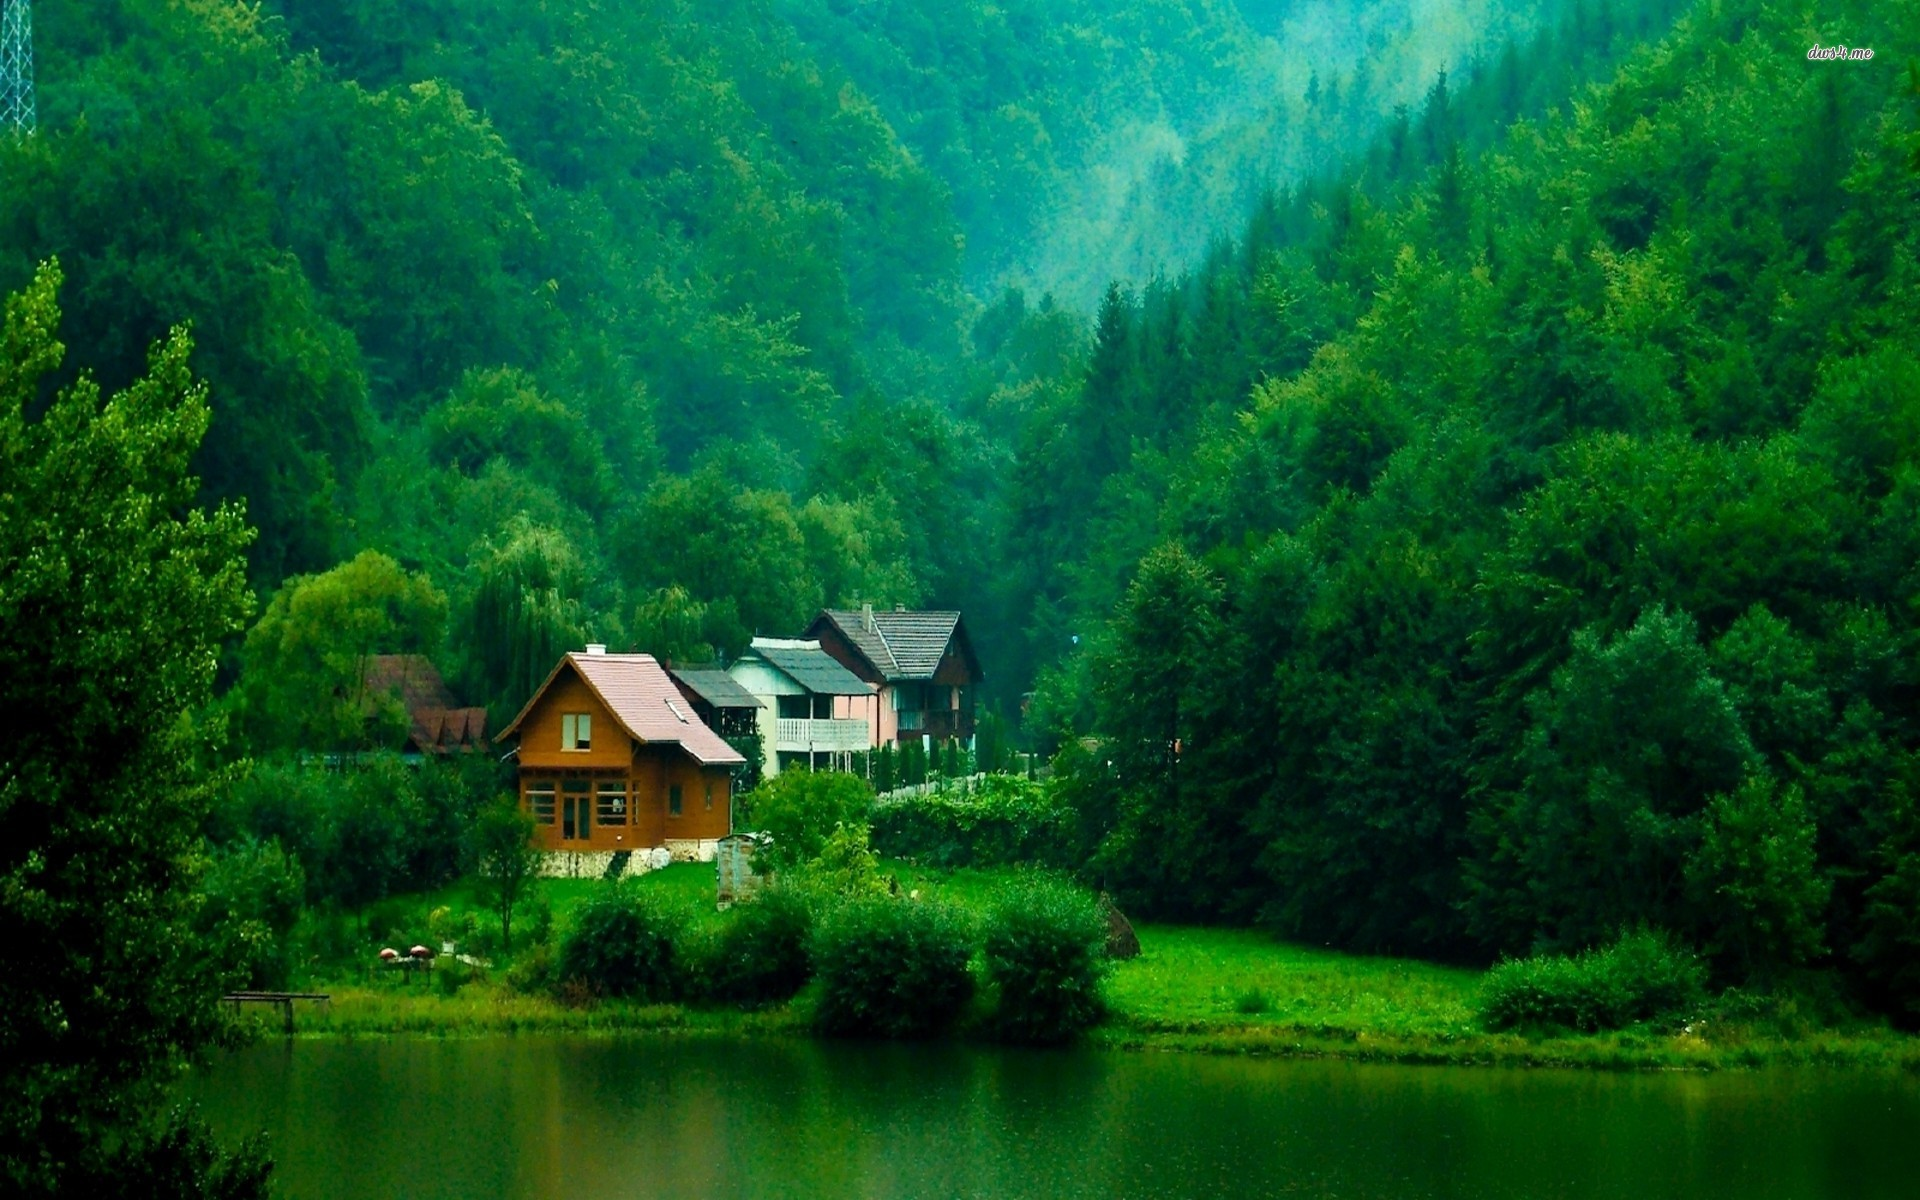 Cabins On The Lakeside Transylvania wallpapers HD   397410 1920x1200